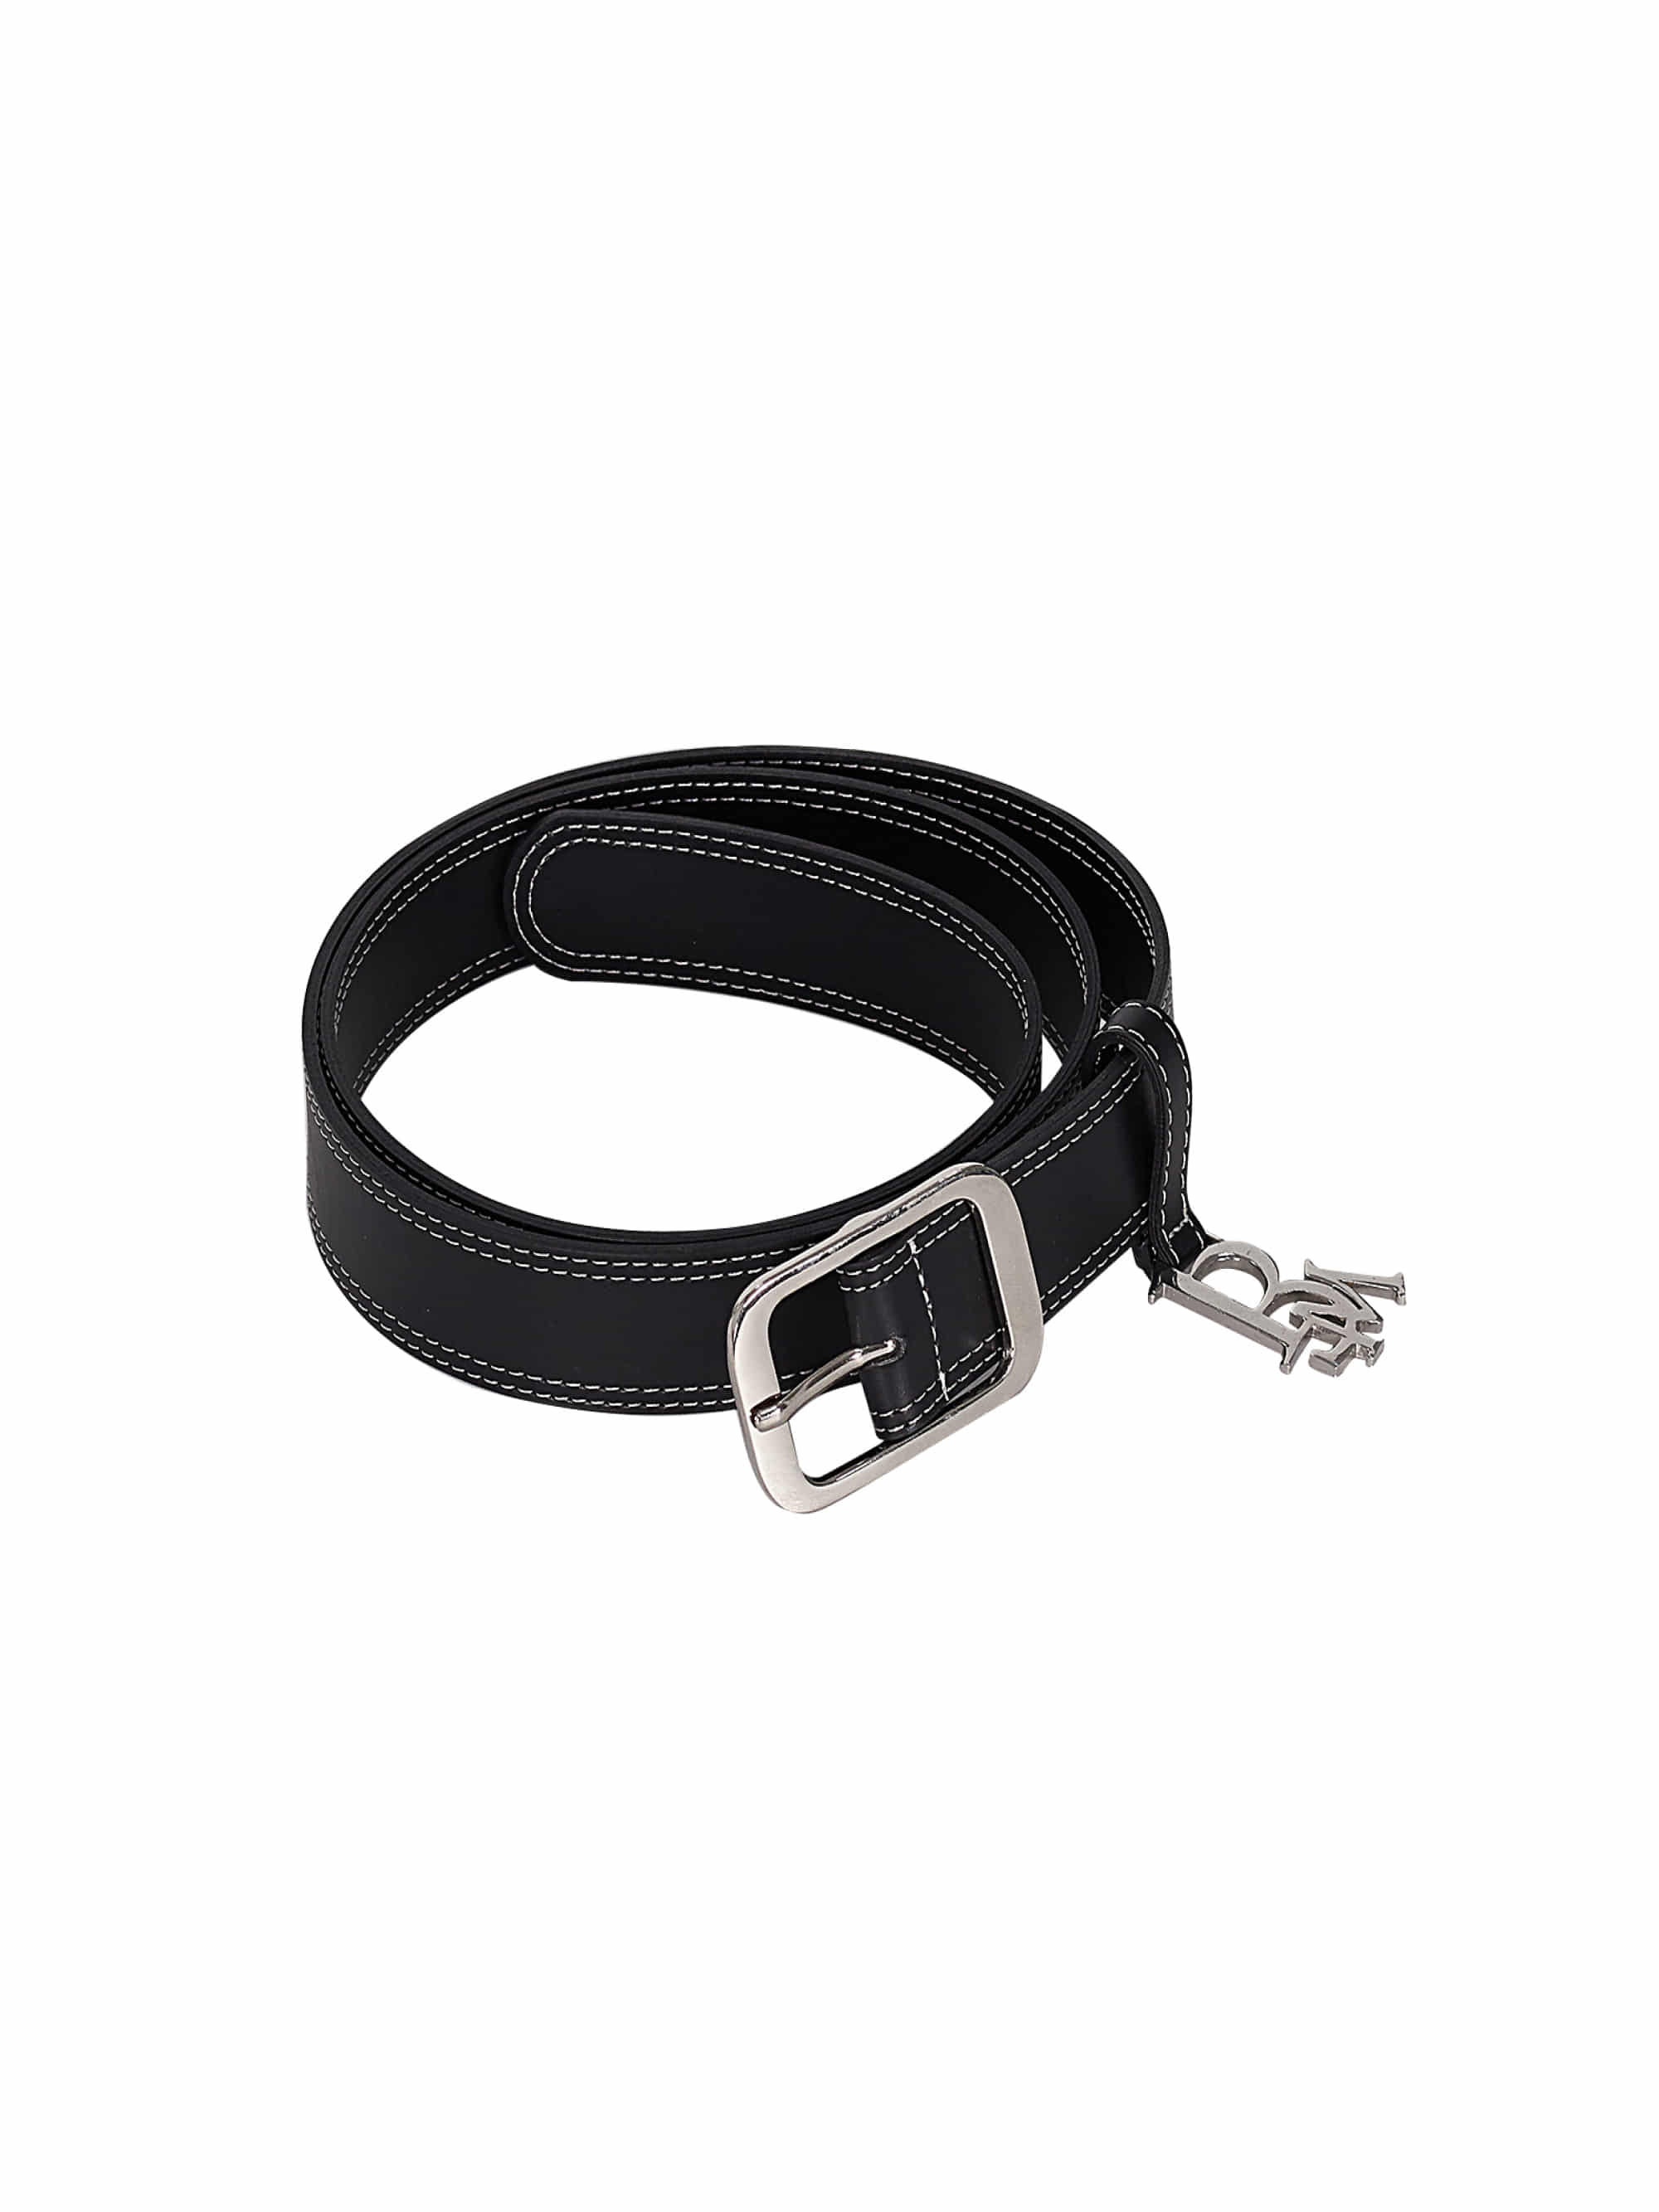 STITCH LOGO BELT (BLACK)